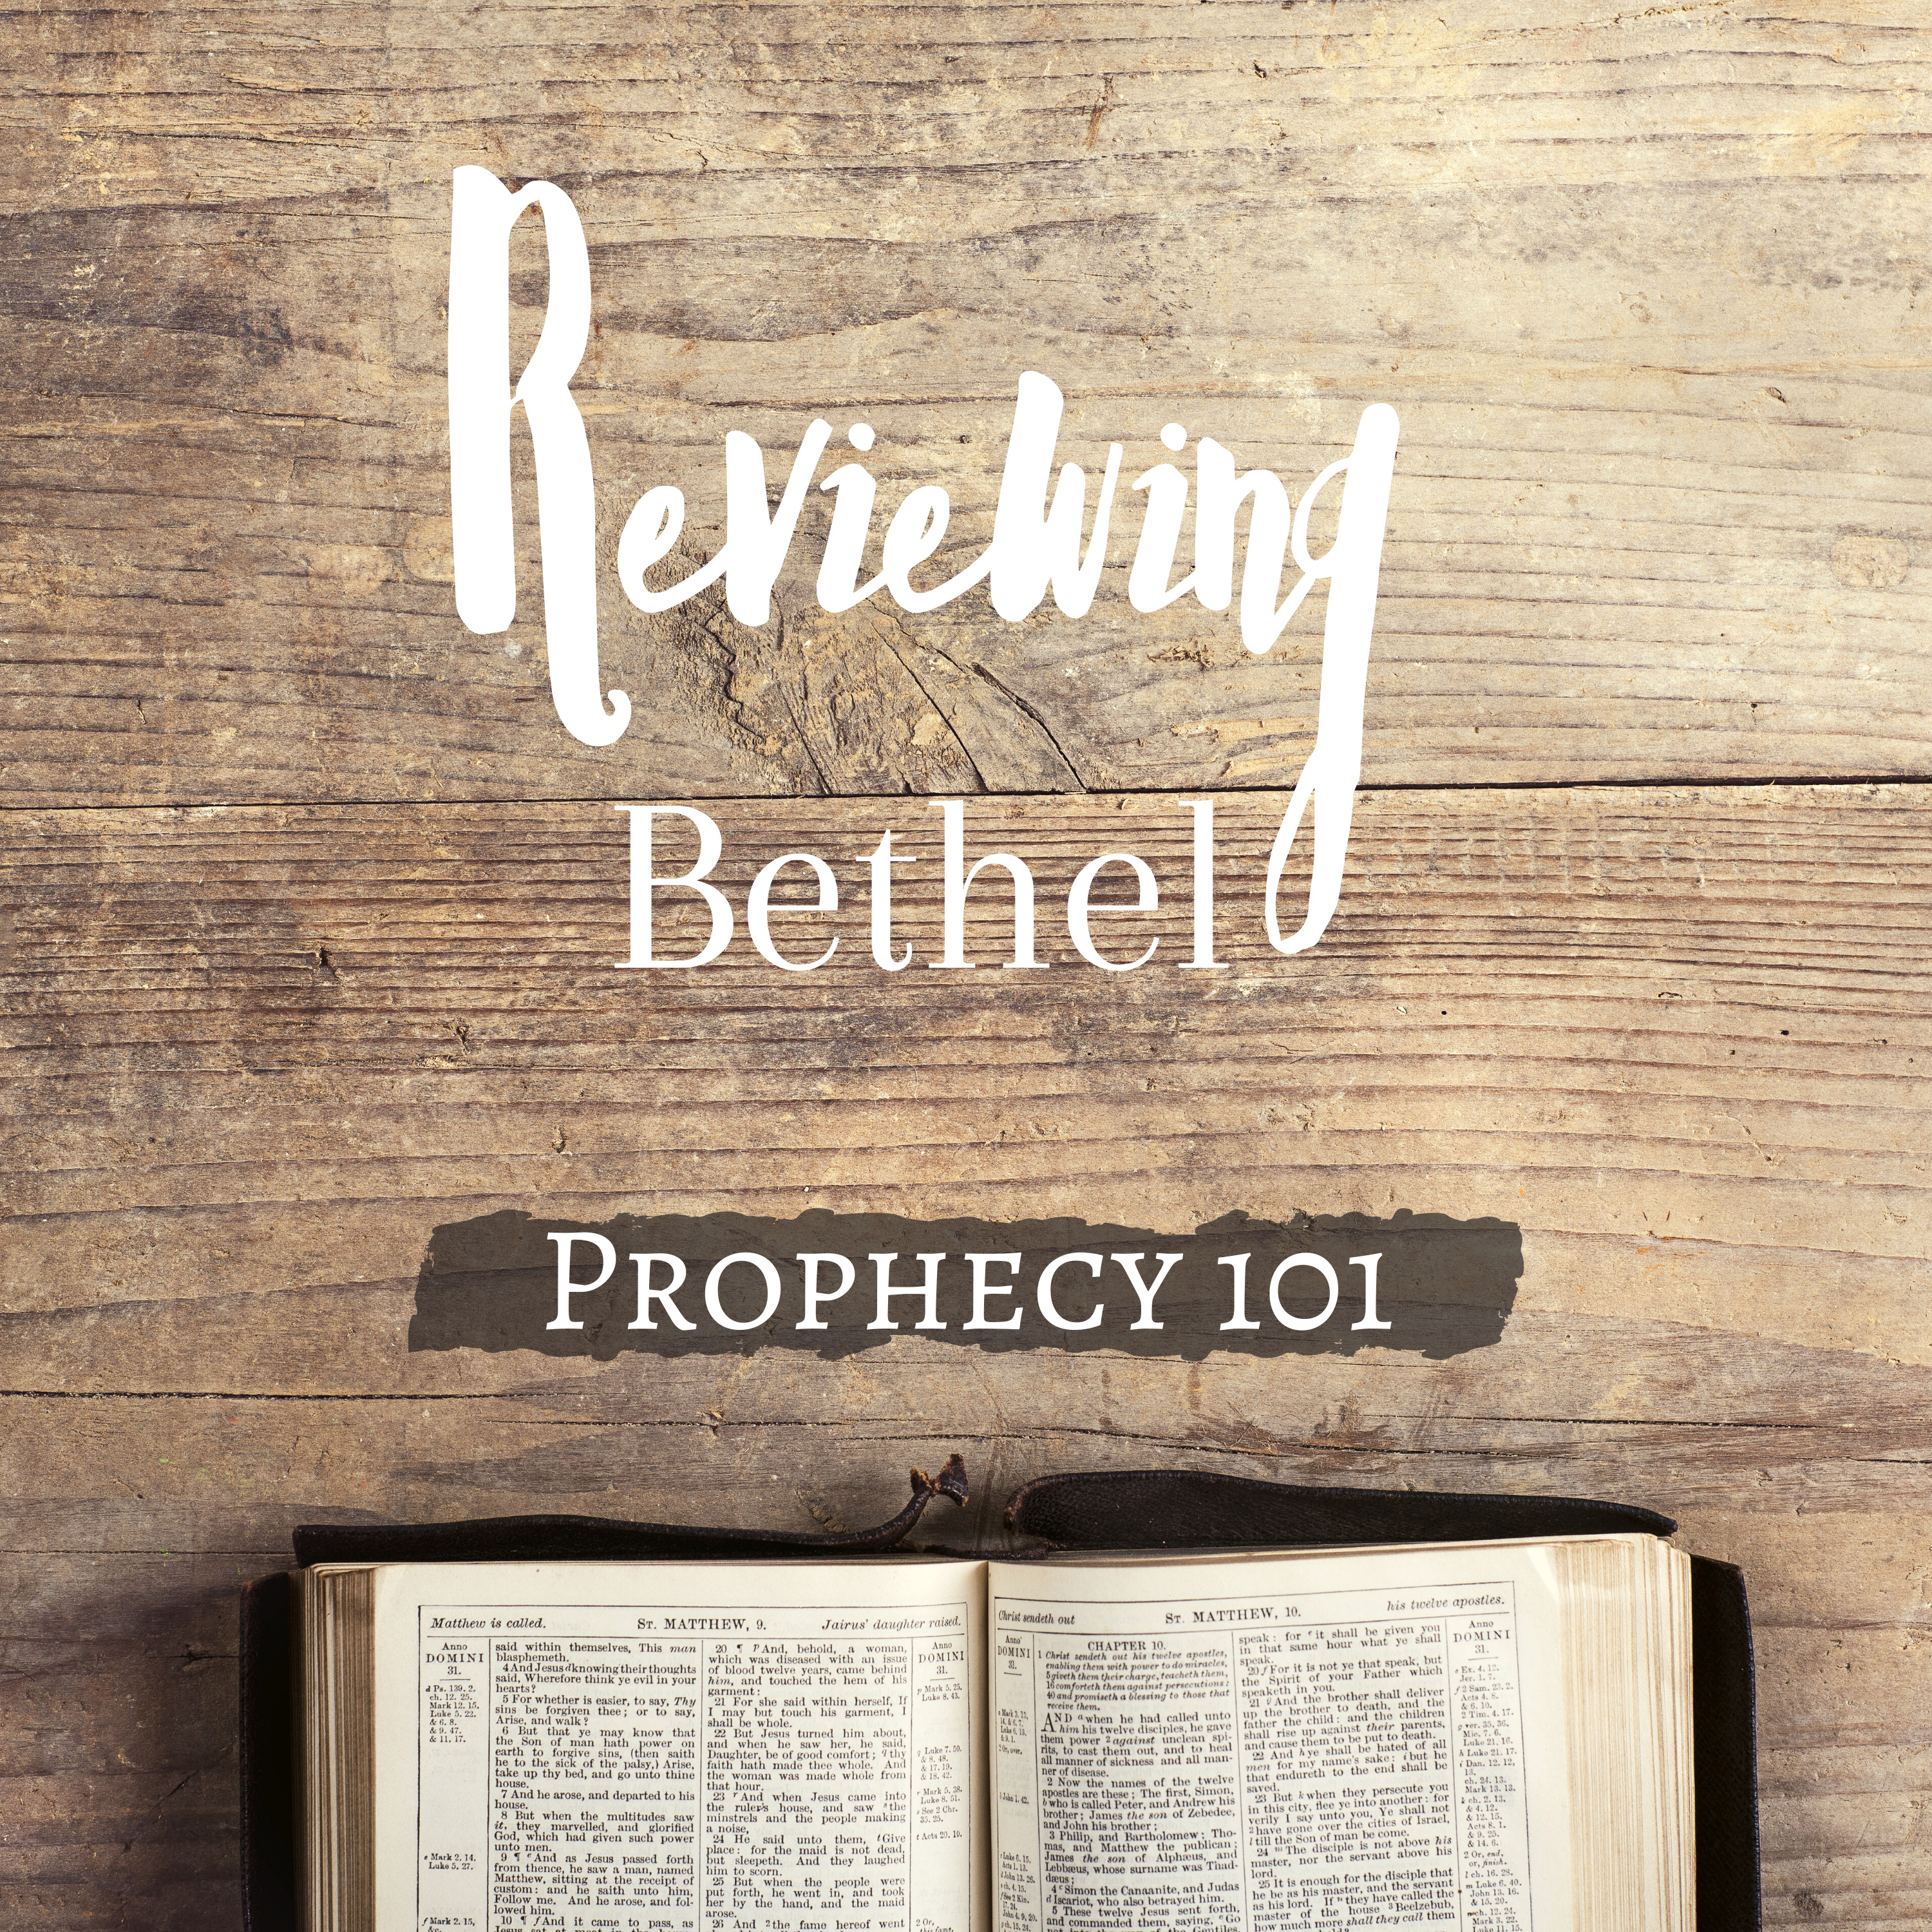 Reviewing Bethel Part 2: Prophecy 101